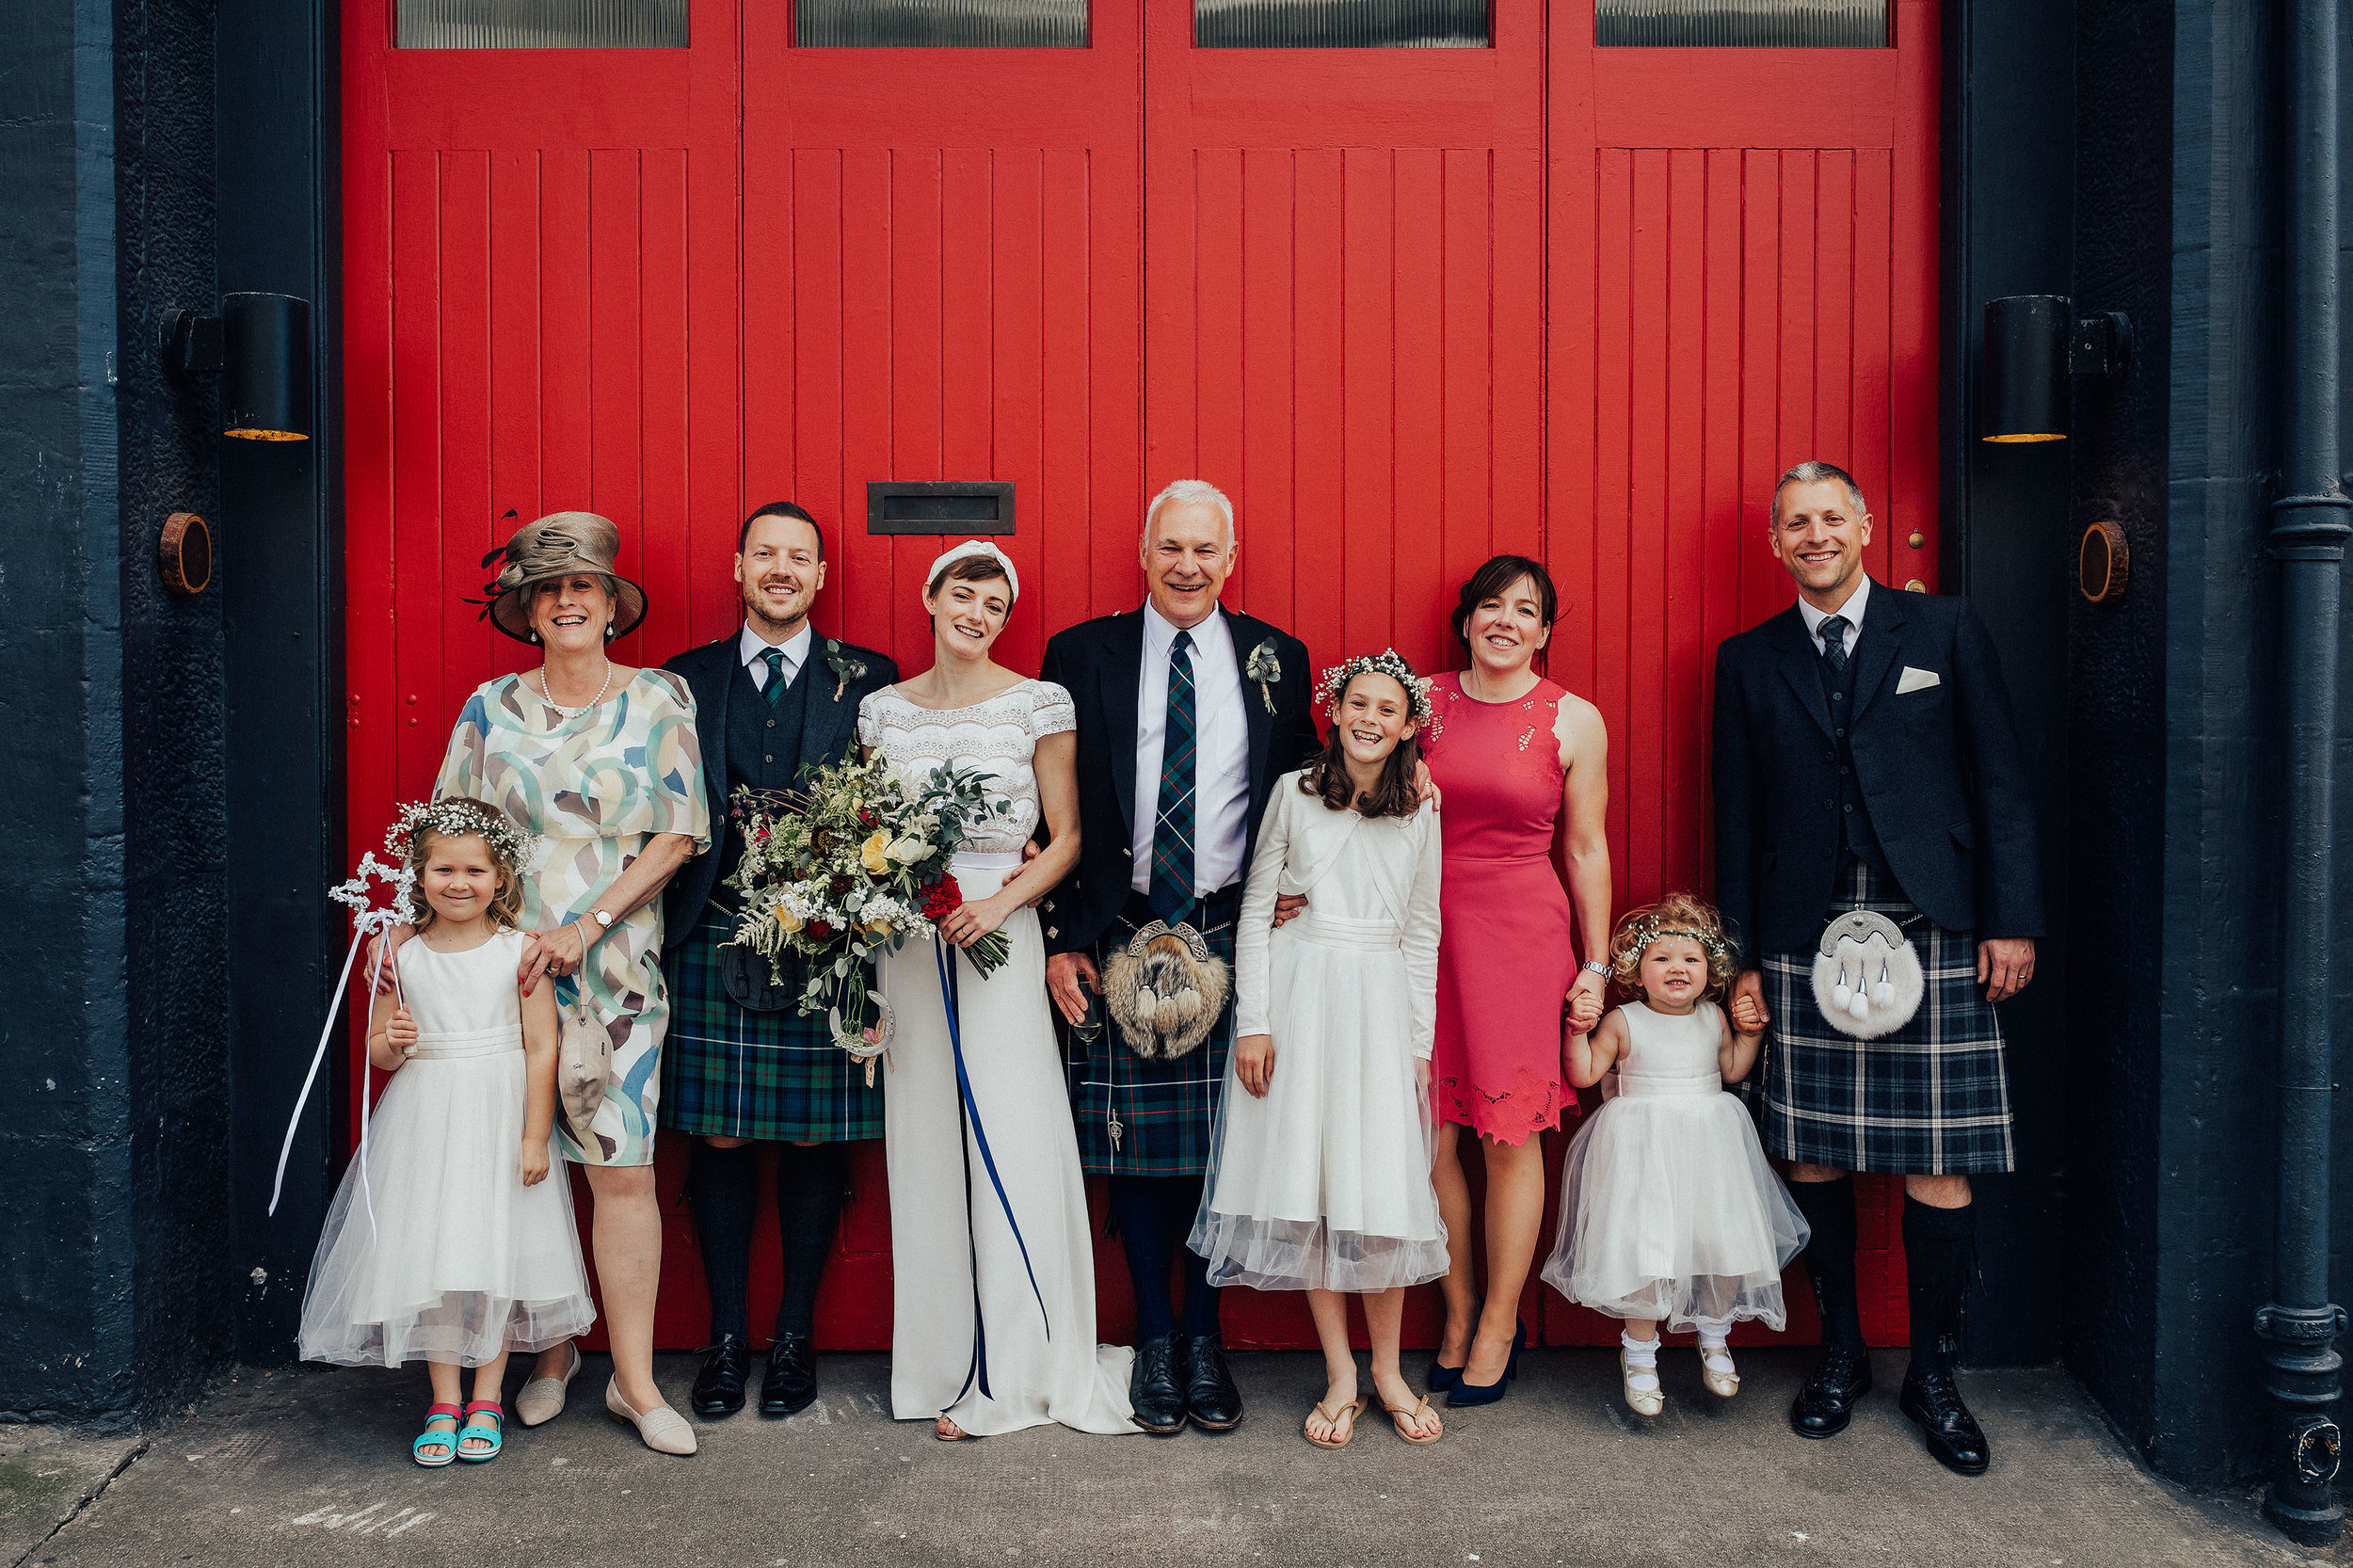 TIMBERYARD_EDINBURGH_WEDDING_PJ_PHILLIPS_PHOTOGRAPHY_137.jpg